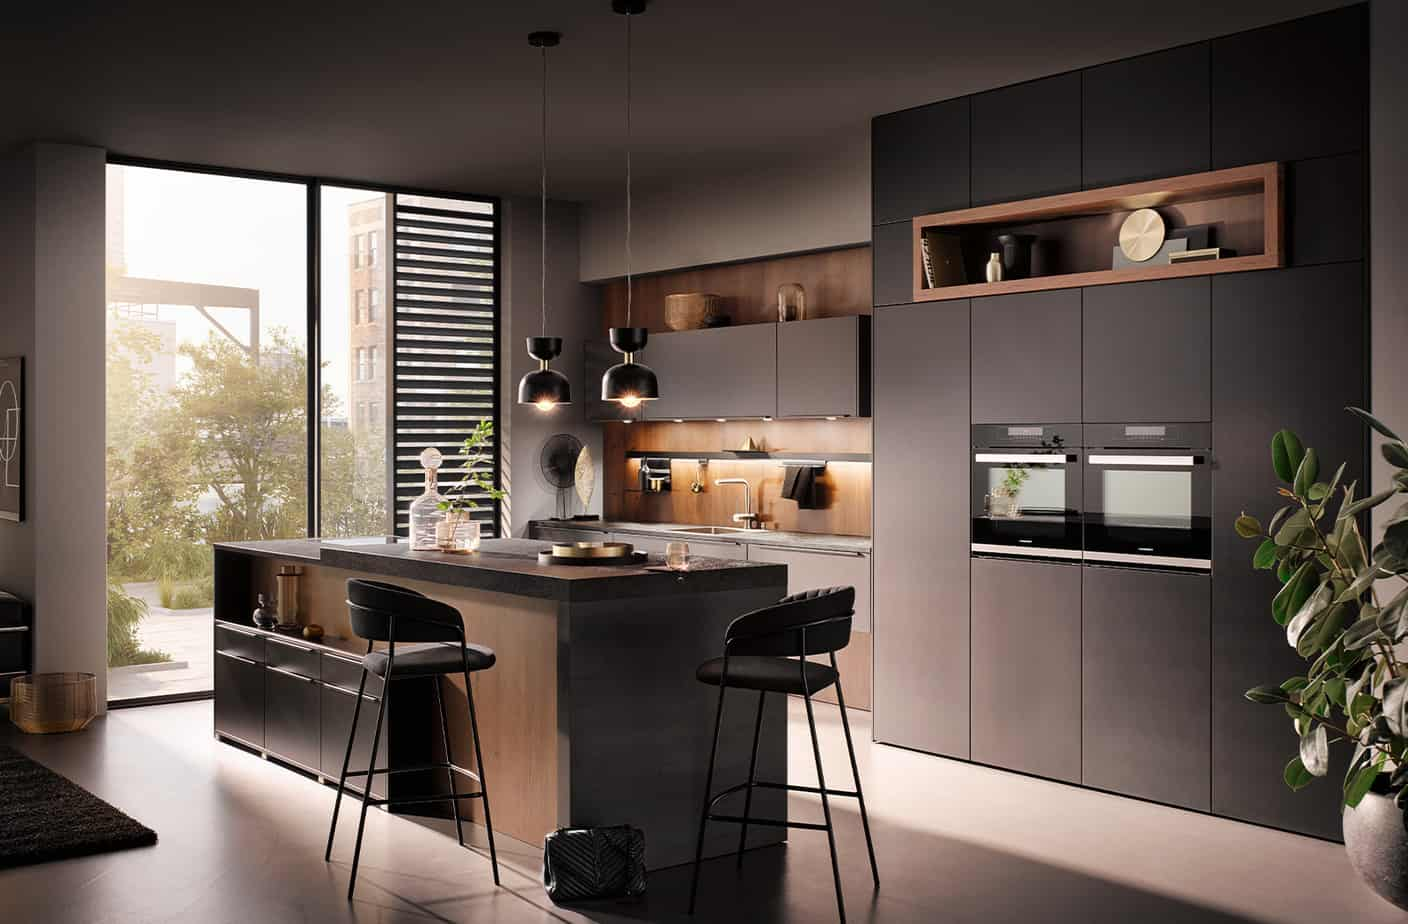 kitchen design 2021 elegant black interior